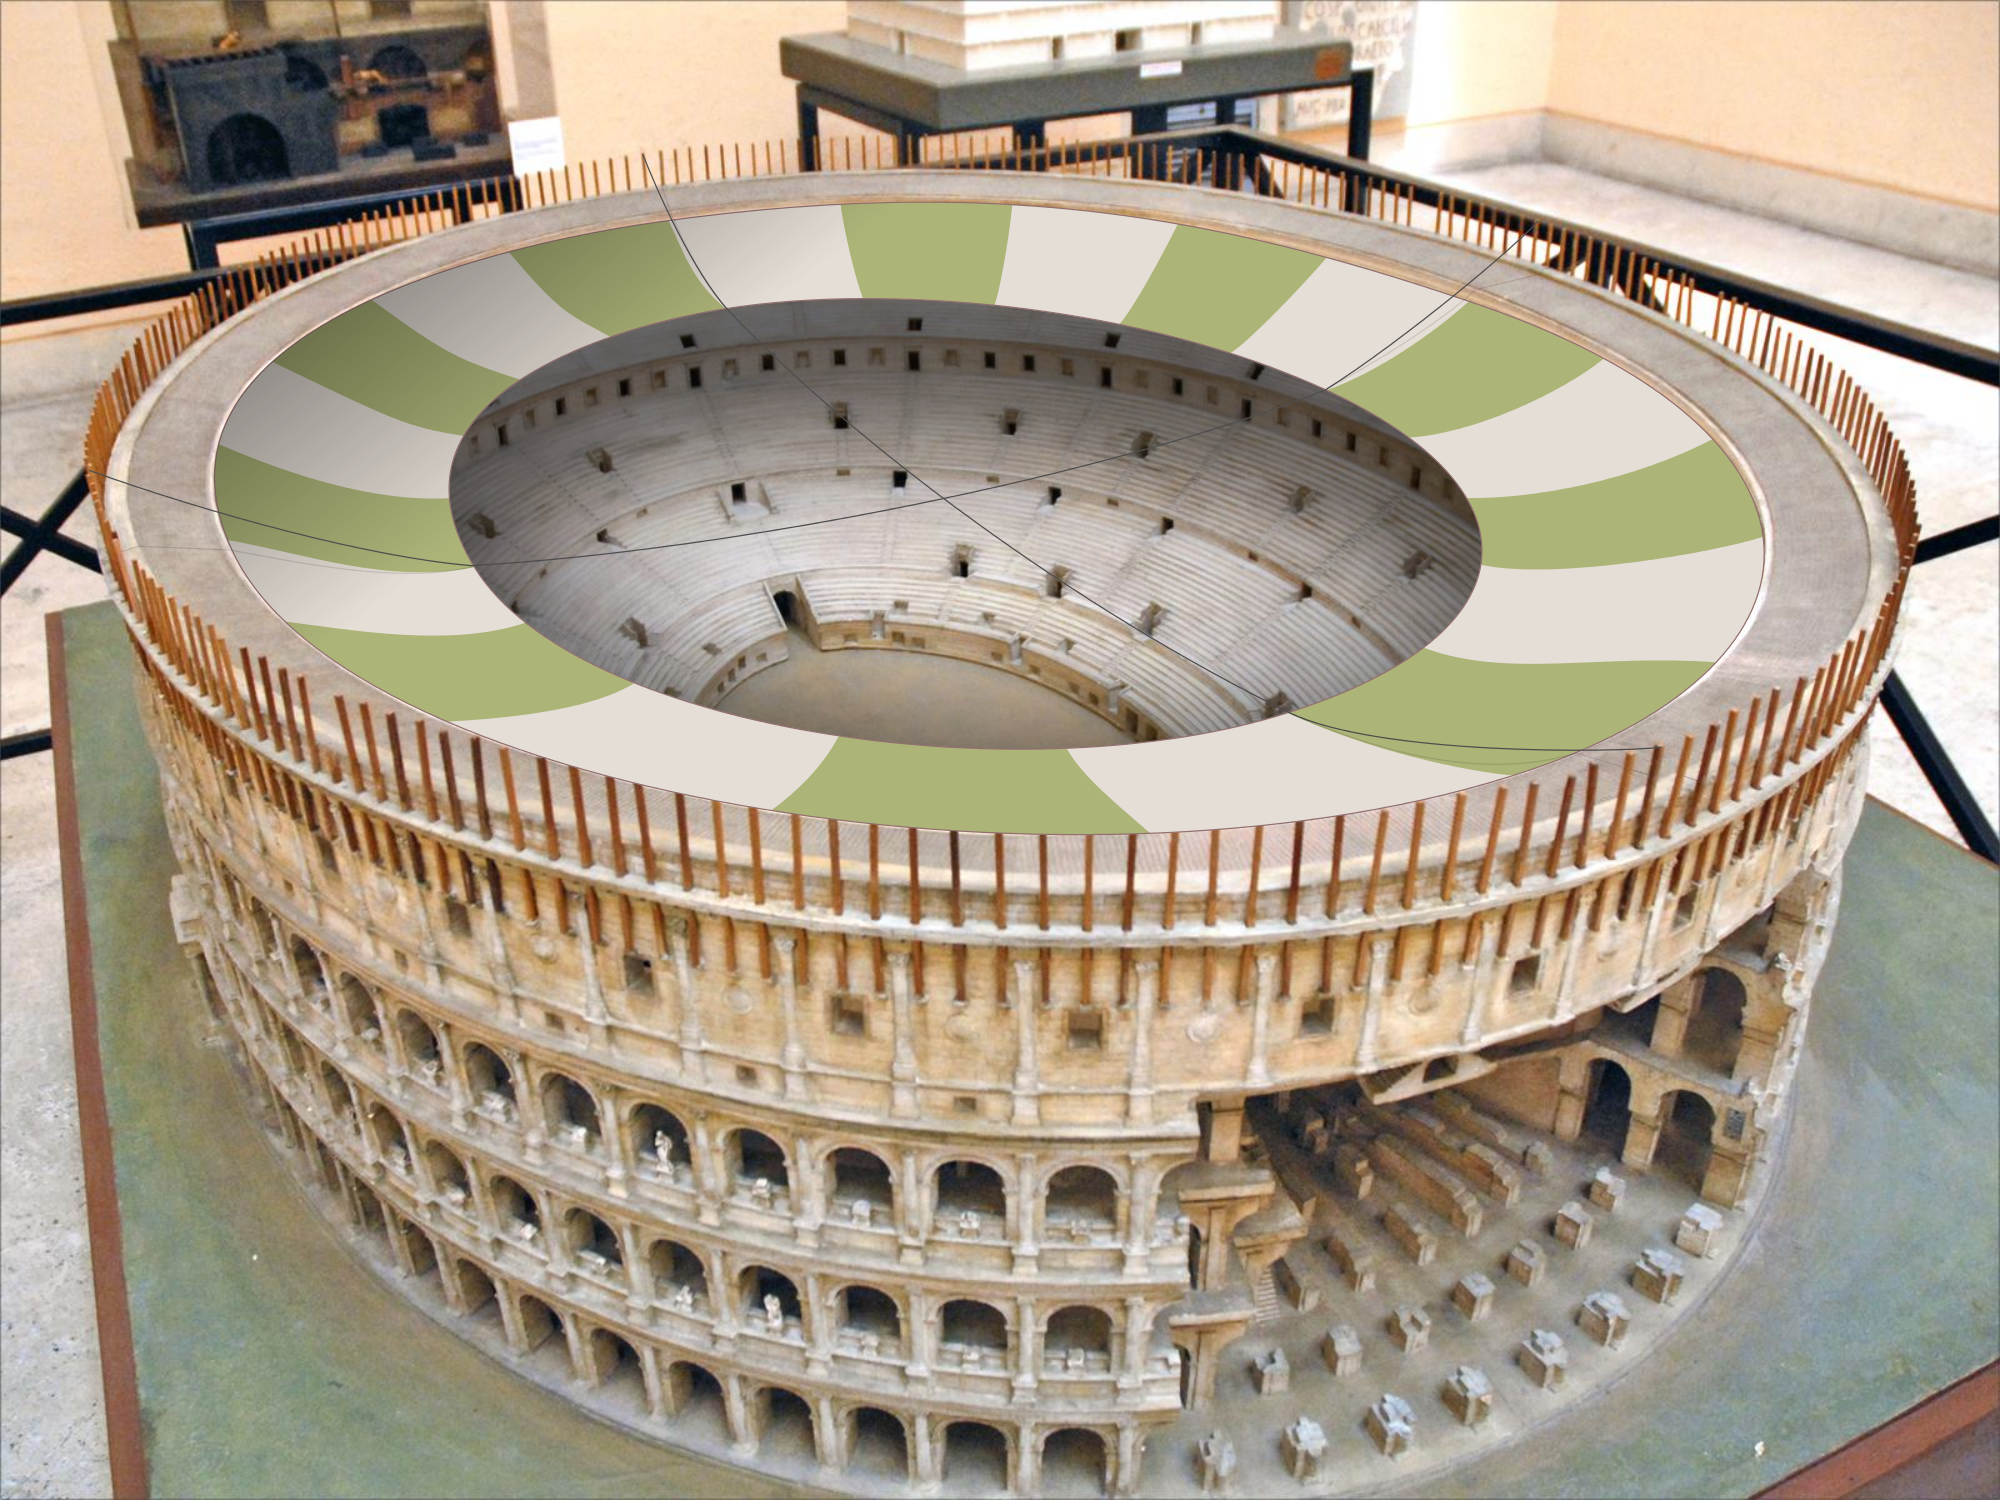 The Velarium covered one third of the Colosseum.